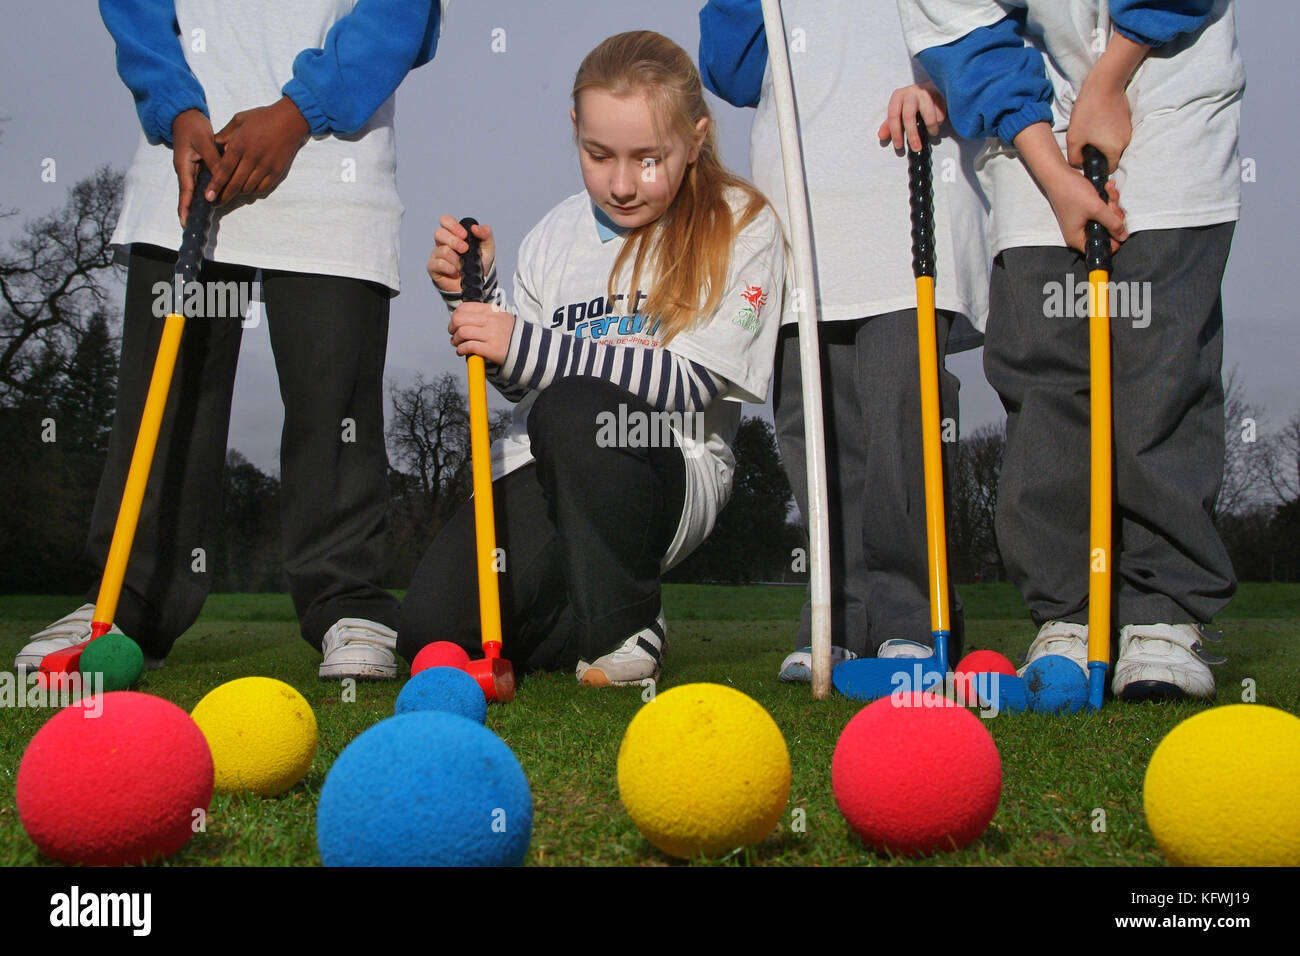 School children playing pitch & putt golf, sponsored by Sport Cardiff - Stock Image